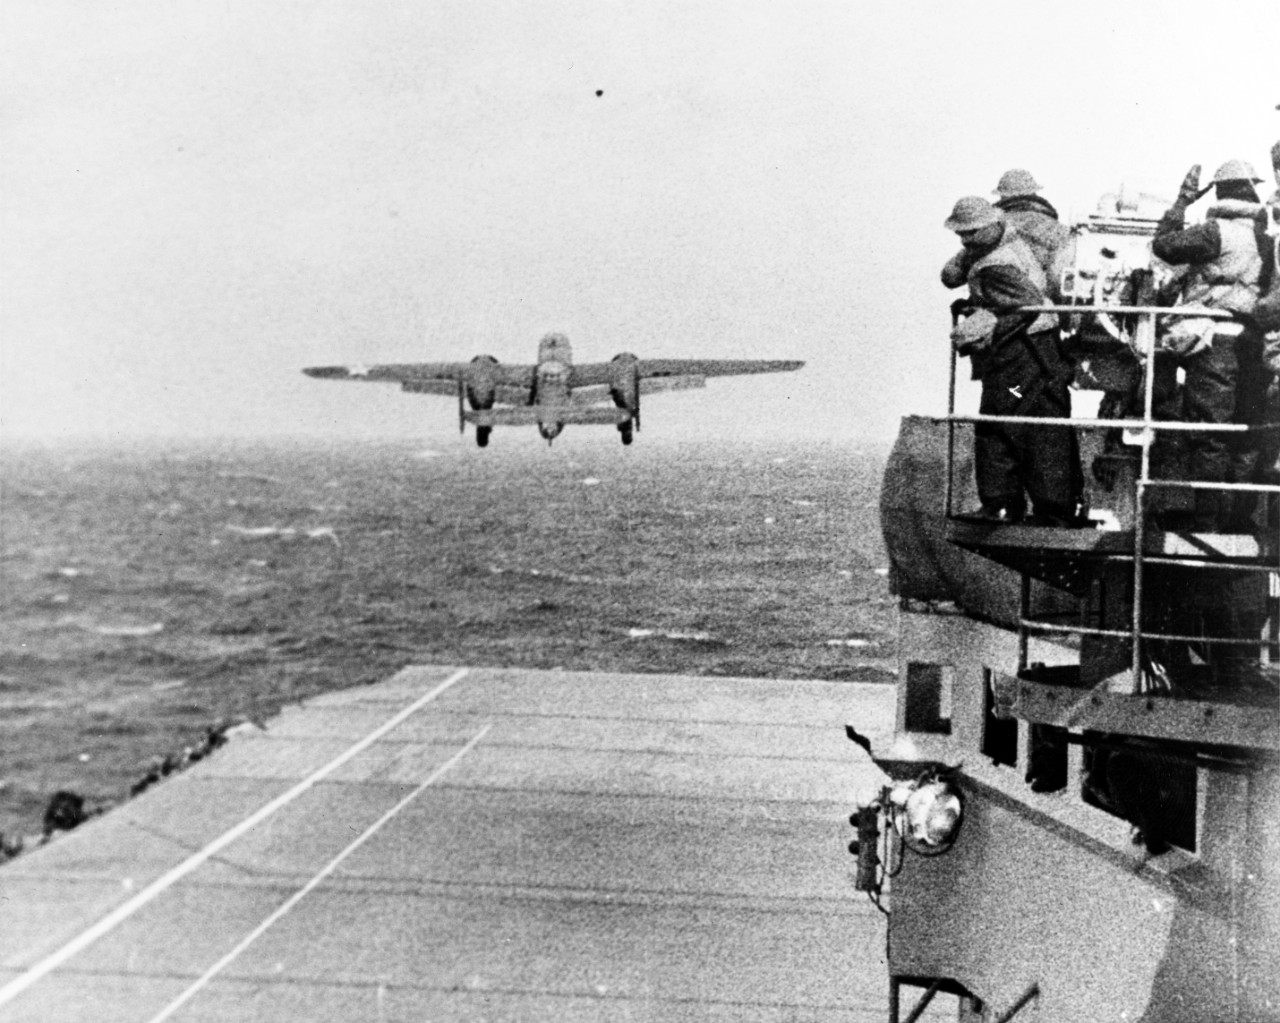 One of the Mitchells takes off from the pitching ship at the start of the raid to bomb the enemy, 18 April 1942. Sailors watch the momentous launch from the signal lamp platform on the right. (U.S. Navy Photograph 80-G-41196, National Archives and Records Administration, Still Pictures Division, College Park, Md.)